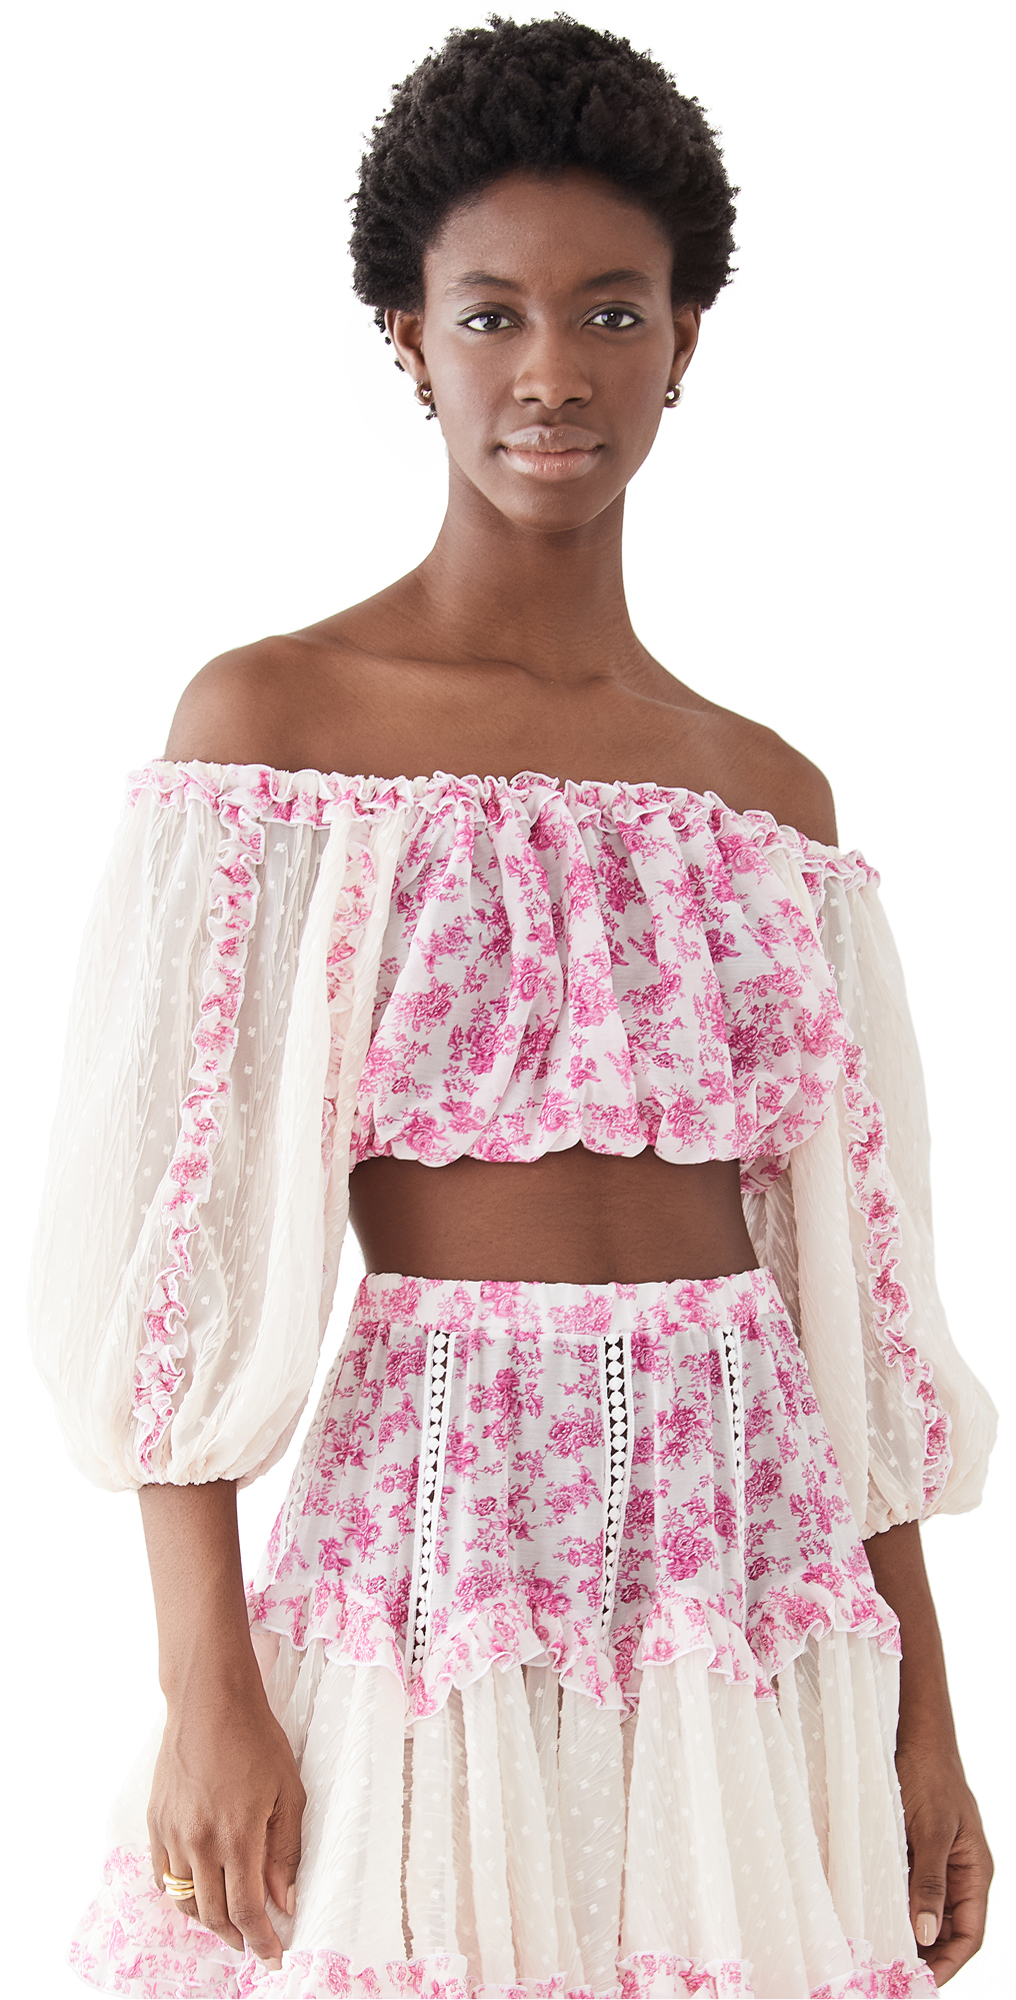 CHIO Floral Frill Crop Top